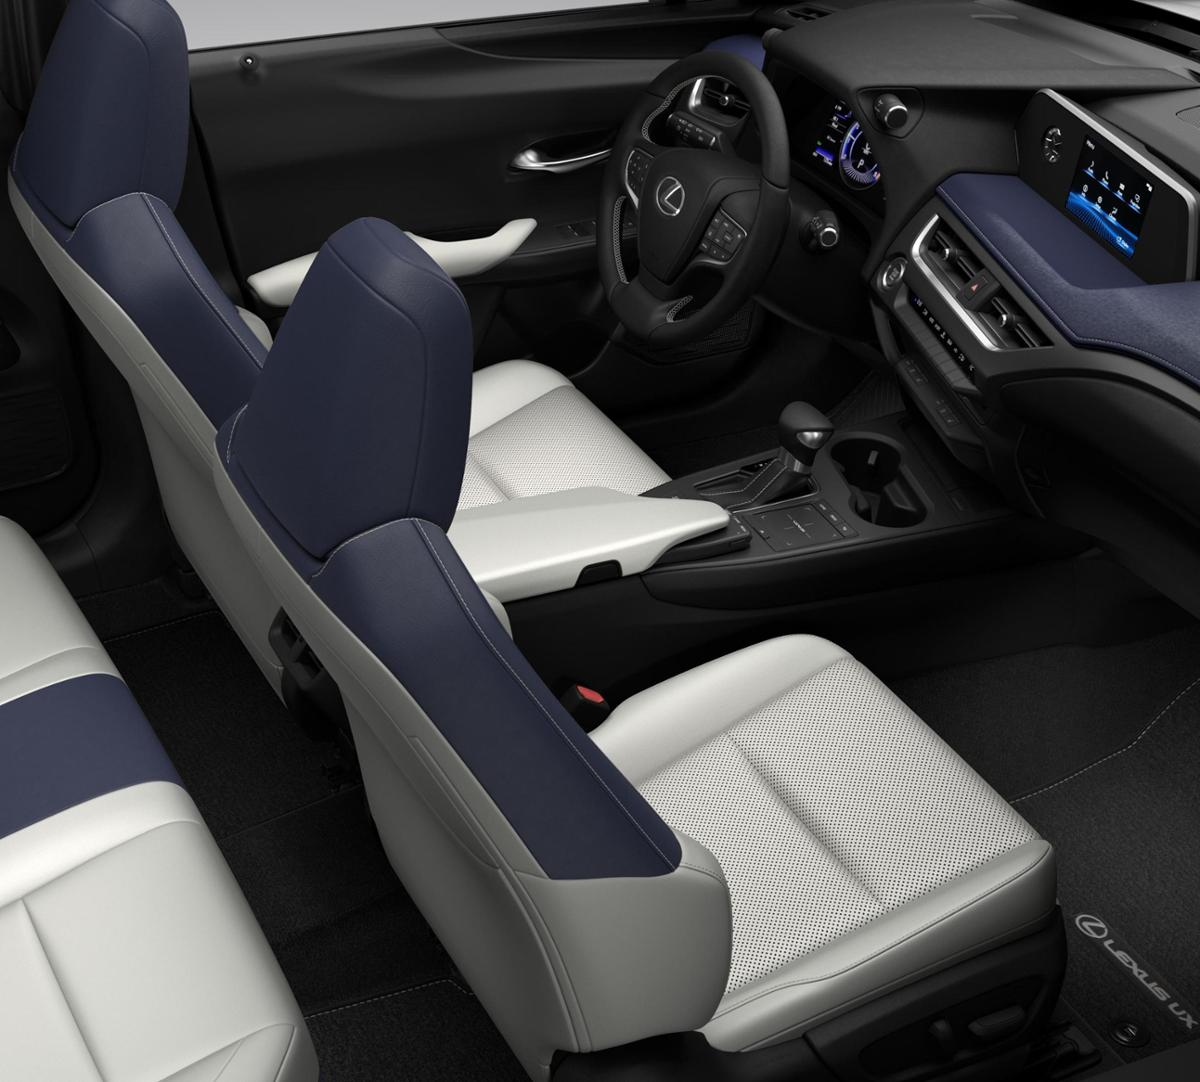 Obsidian 2019 Lexus UX 200: New Suv for Sale in South ...